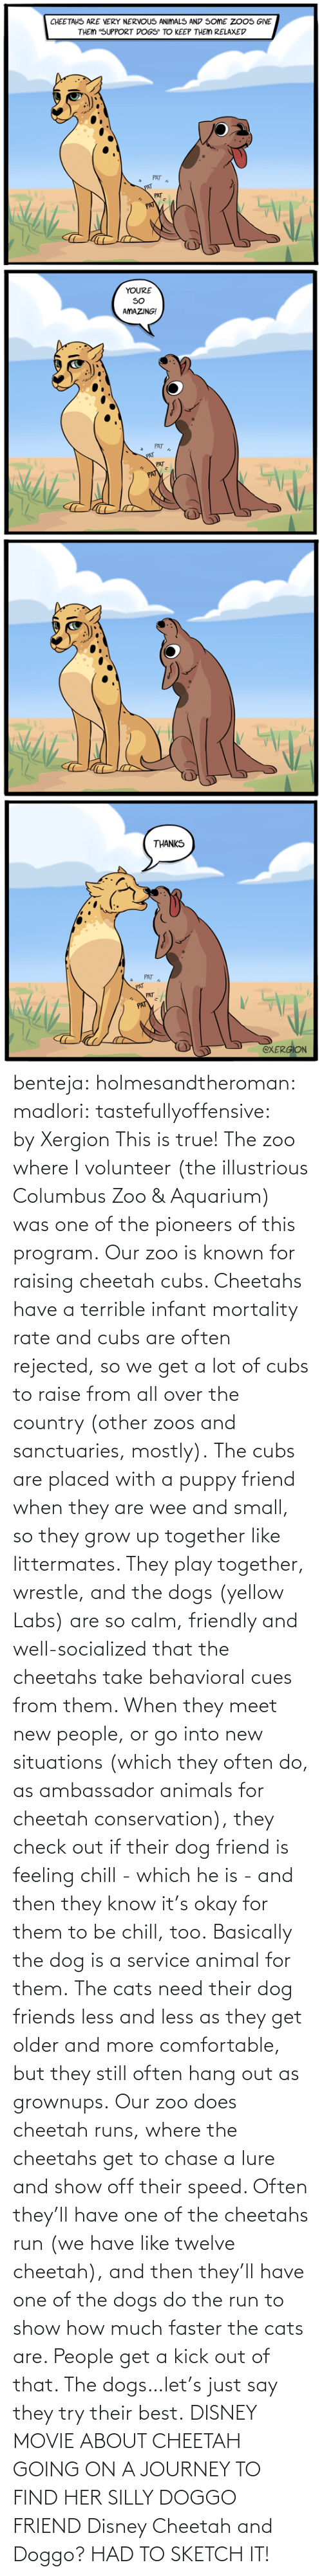 Dogs: benteja:  holmesandtheroman:  madlori:  tastefullyoffensive: by Xergion This is true! The zoo where I volunteer (the illustrious Columbus Zoo & Aquarium) was one of the pioneers of this program. Our zoo is known for raising cheetah cubs. Cheetahs have a terrible infant mortality rate and cubs are often rejected, so we get a lot of cubs to raise from all over the country (other zoos and sanctuaries, mostly). The cubs are placed with a puppy friend when they are wee and small, so they grow up together like littermates. They play together, wrestle, and the dogs (yellow Labs) are so calm, friendly and well-socialized that the cheetahs take behavioral cues from them. When they meet new people, or go into new situations (which they often do, as ambassador animals for cheetah conservation), they check out if their dog friend is feeling chill - which he is - and then they know it's okay for them to be chill, too. Basically the dog is a service animal for them. The cats need their dog friends less and less as they get older and more comfortable, but they still often hang out as grownups. Our zoo does cheetah runs, where the cheetahs get to chase a lure and show off their speed. Often they'll have one of the cheetahs run (we have like twelve cheetah), and then they'll have one of the dogs do the run to show how much faster the cats are. People get a kick out of that. The dogs…let's just say they try their best.   DISNEY MOVIE ABOUT CHEETAH GOING ON A JOURNEY TO FIND HER SILLY DOGGO FRIEND  Disney Cheetah and Doggo? HAD TO SKETCH IT!